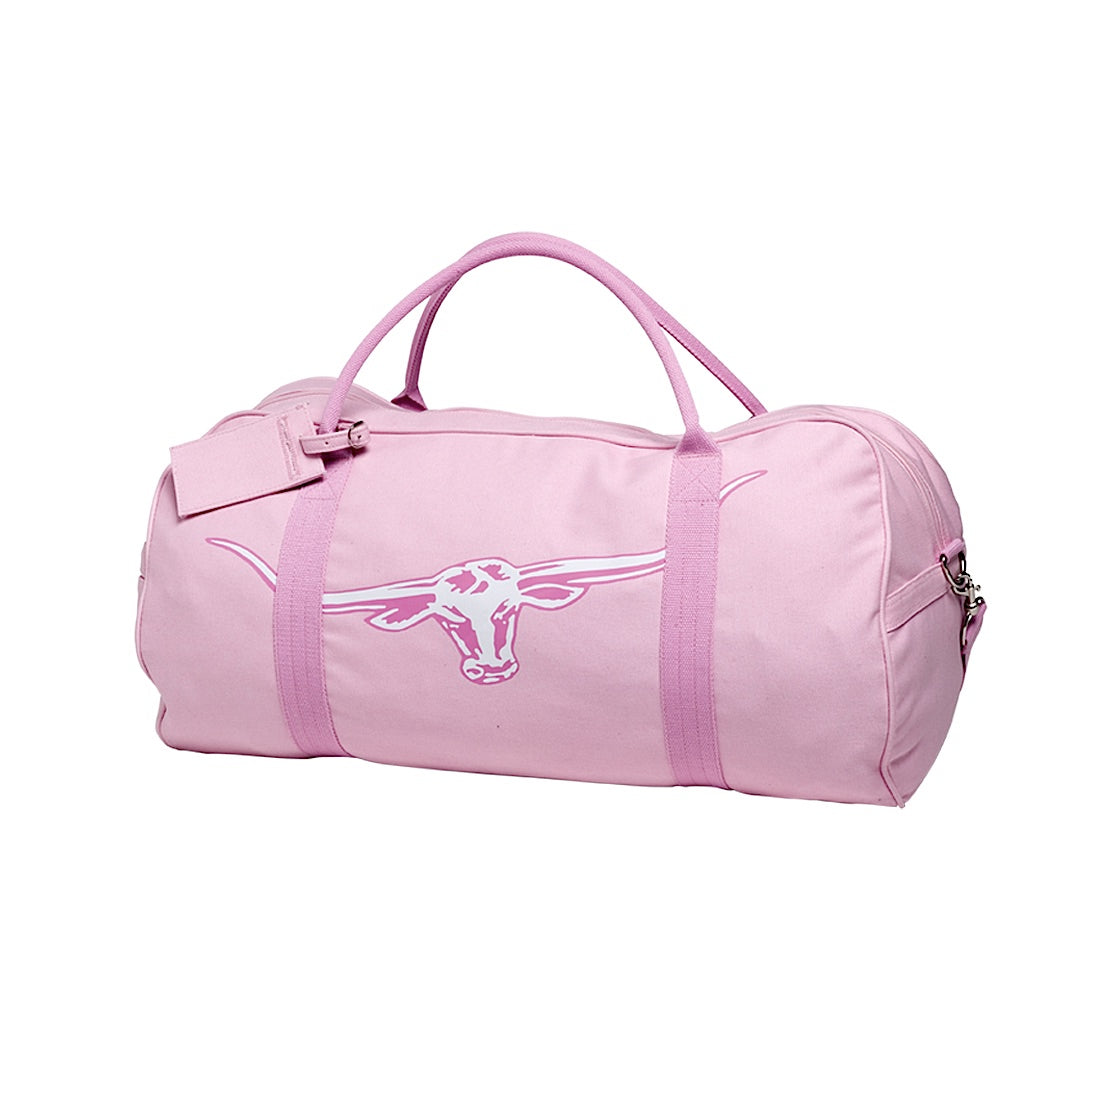 R.M.Williams Nanga Canvas Bag Pink